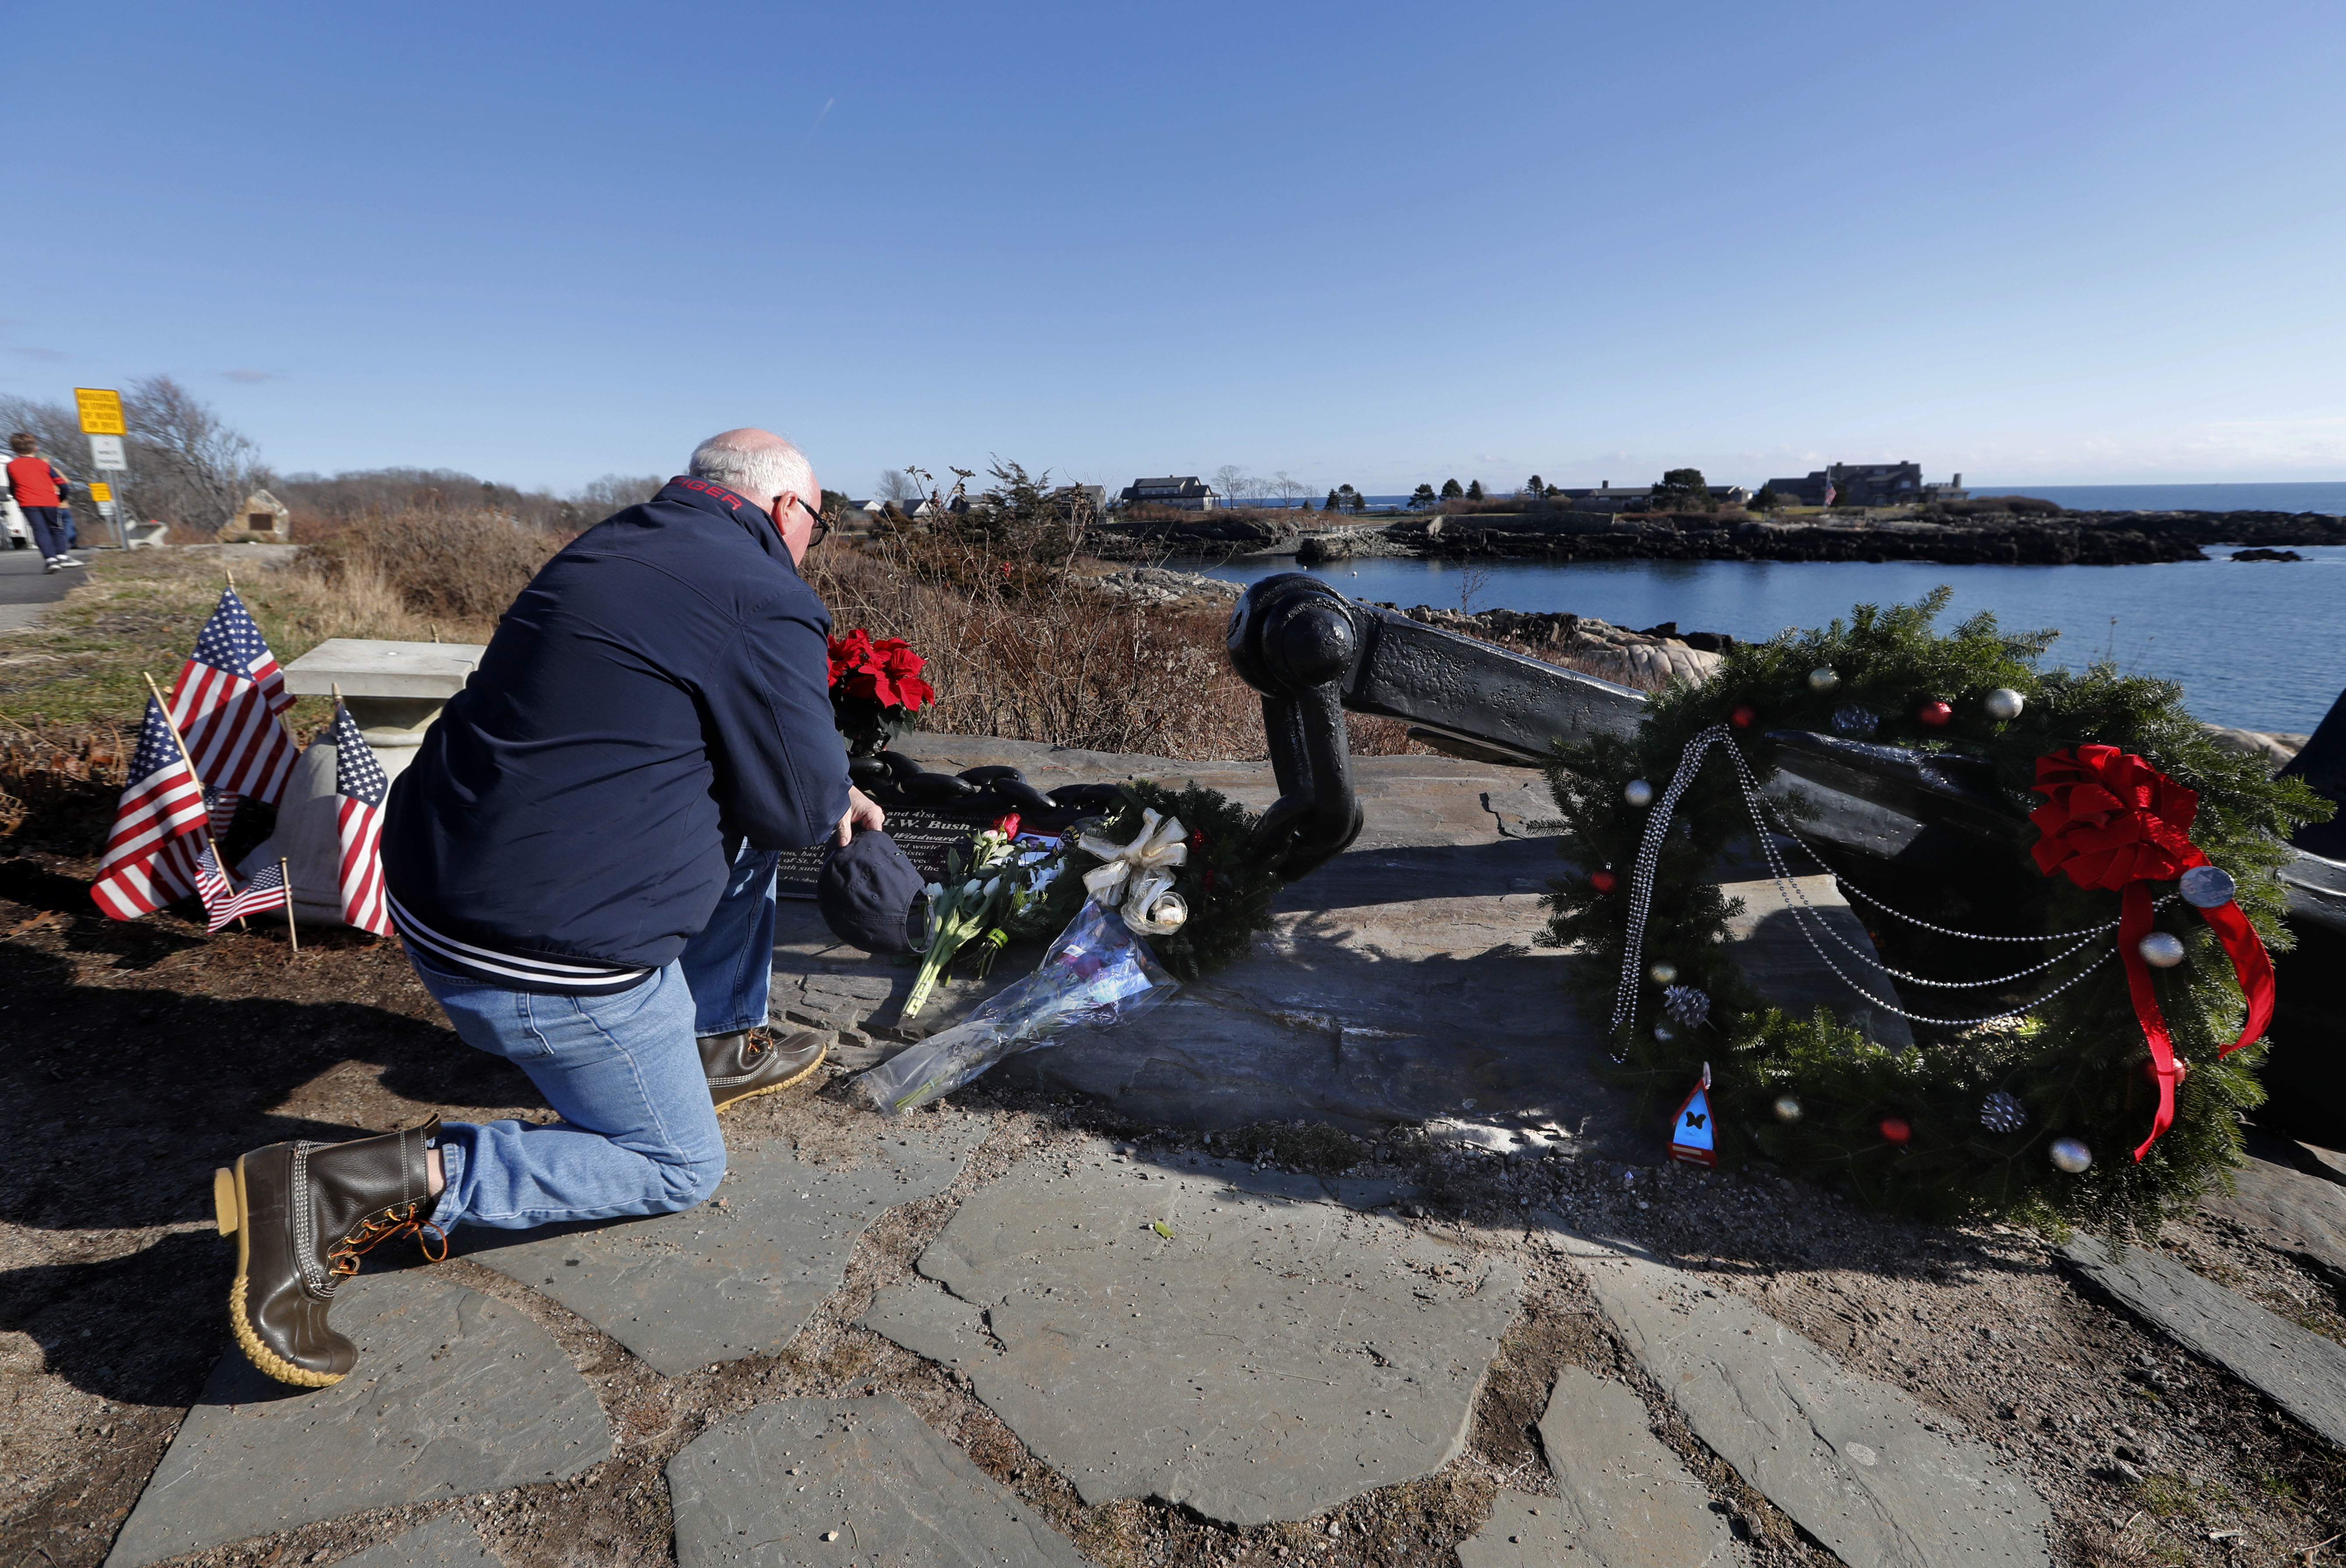 A man pays his respects to former President George H. W. Bush at a makeshift memorial across from Walker's Point, the Bush's summer home, Saturday, Dec. 1, 2018, in Kennebunkport, Maine. (AP Photo/Robert F. Bukaty)